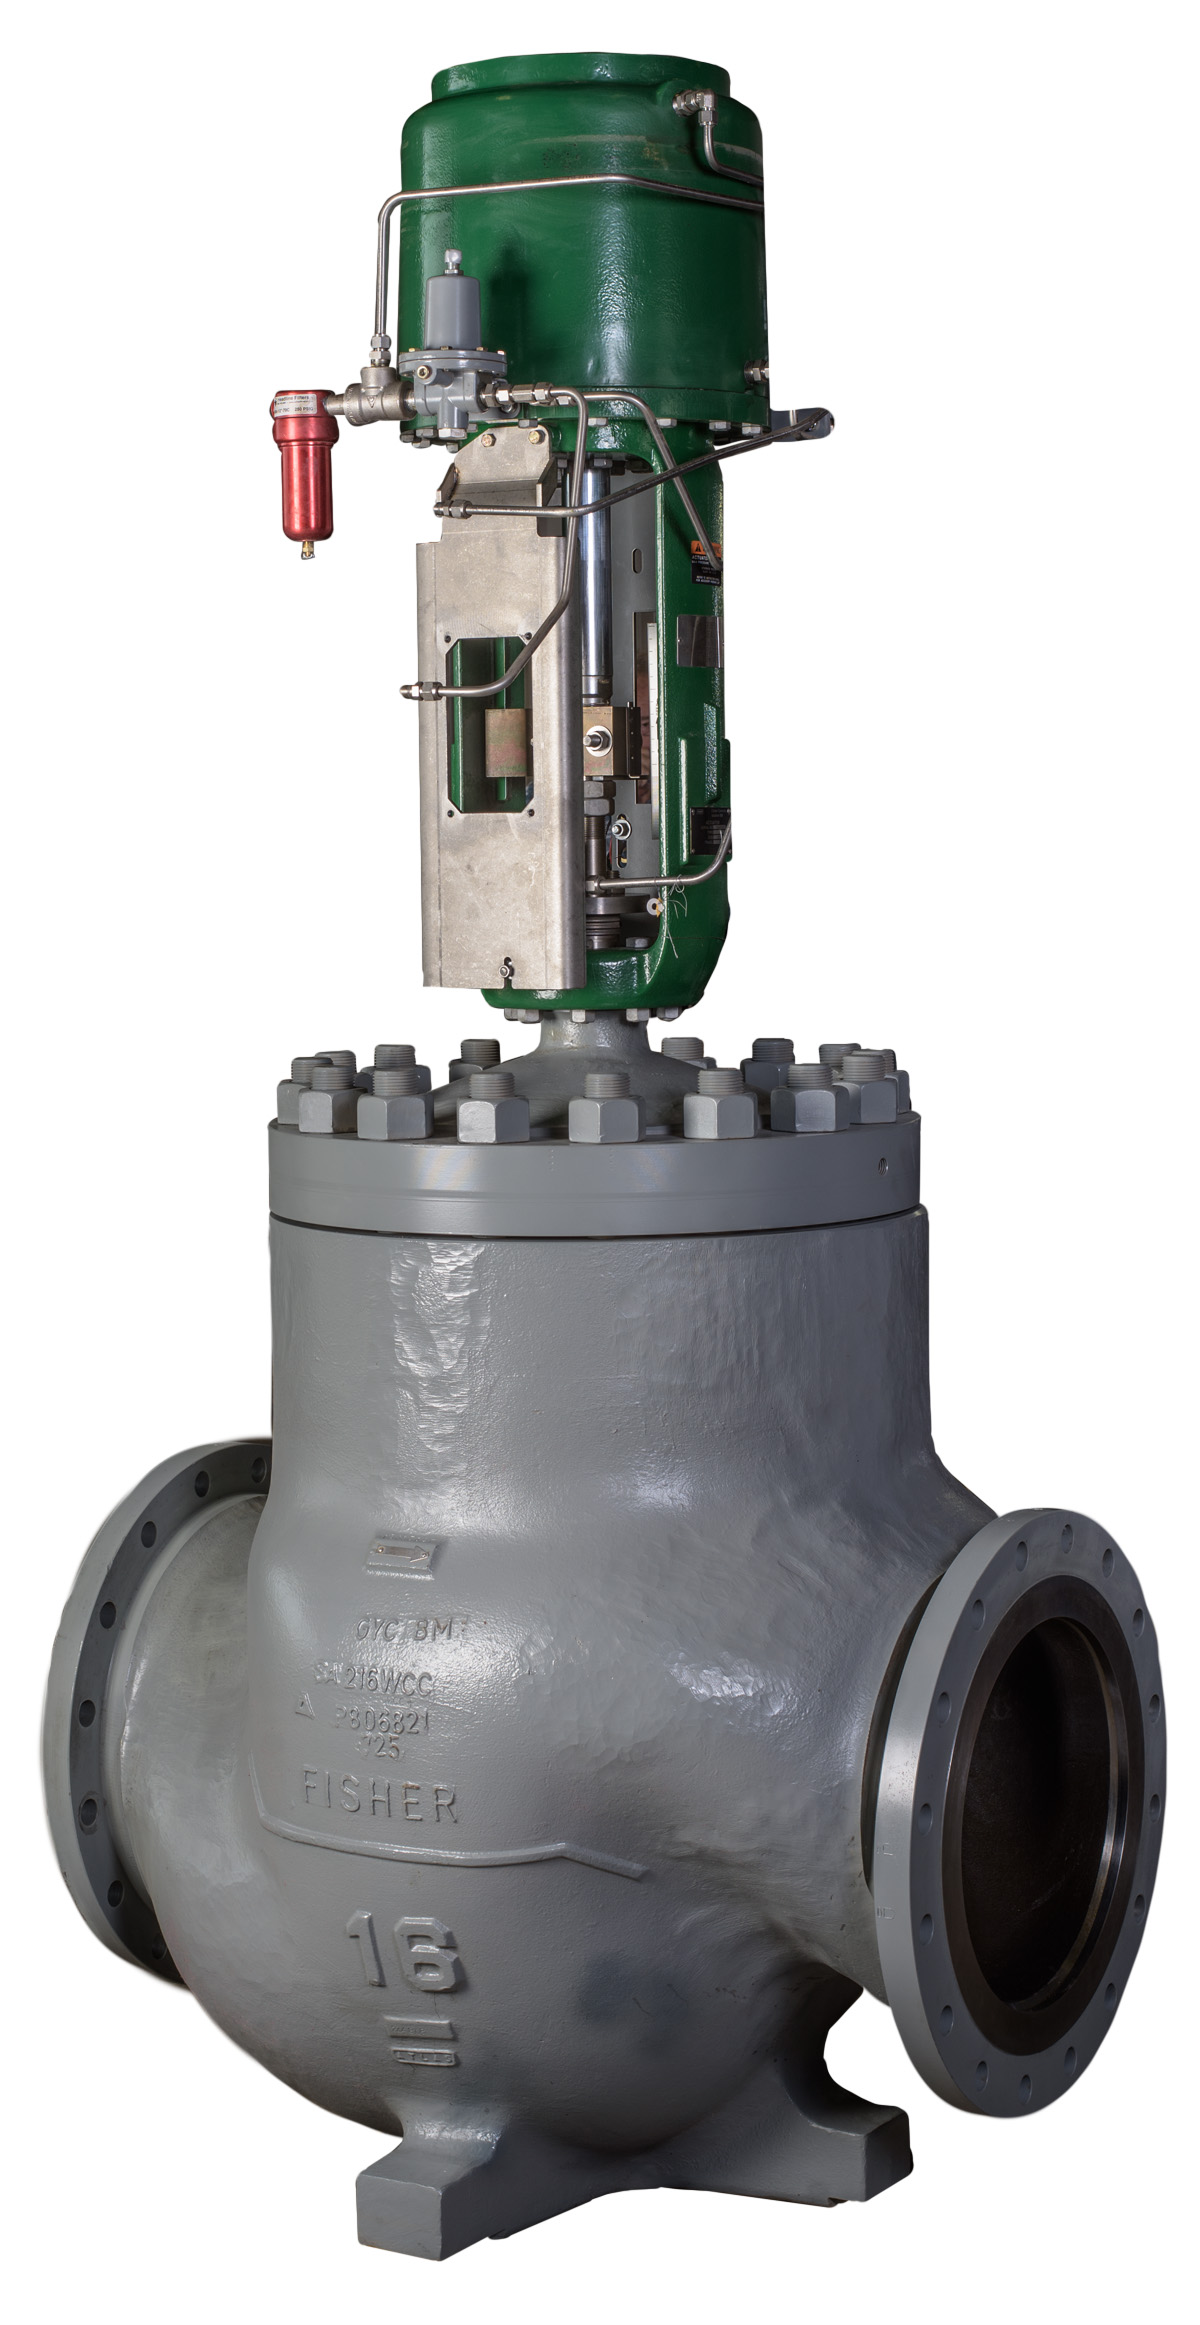 remanufactured-fisher-EUT-16-inch-control-valve-with-585C-actuator